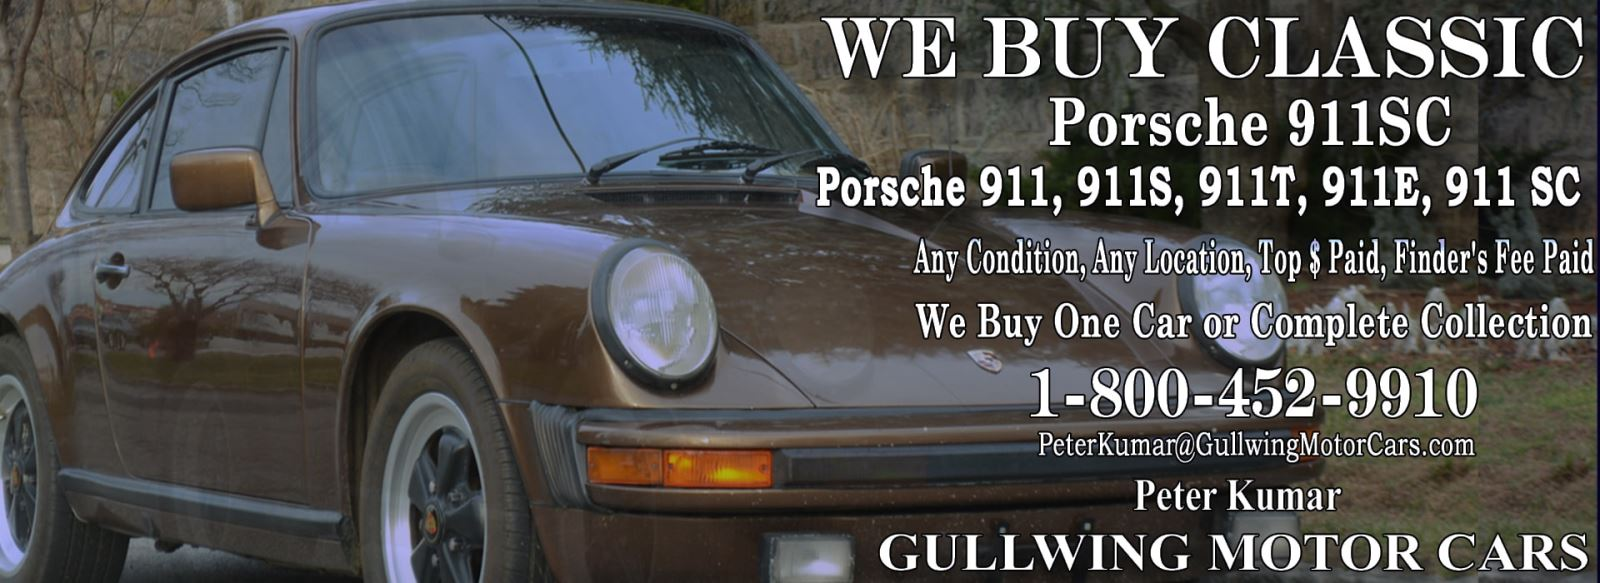 Classic Porsche 911SC for sale, we buy vintage Porsche 911SC. Call Peter Kumar. Gullwing Motor